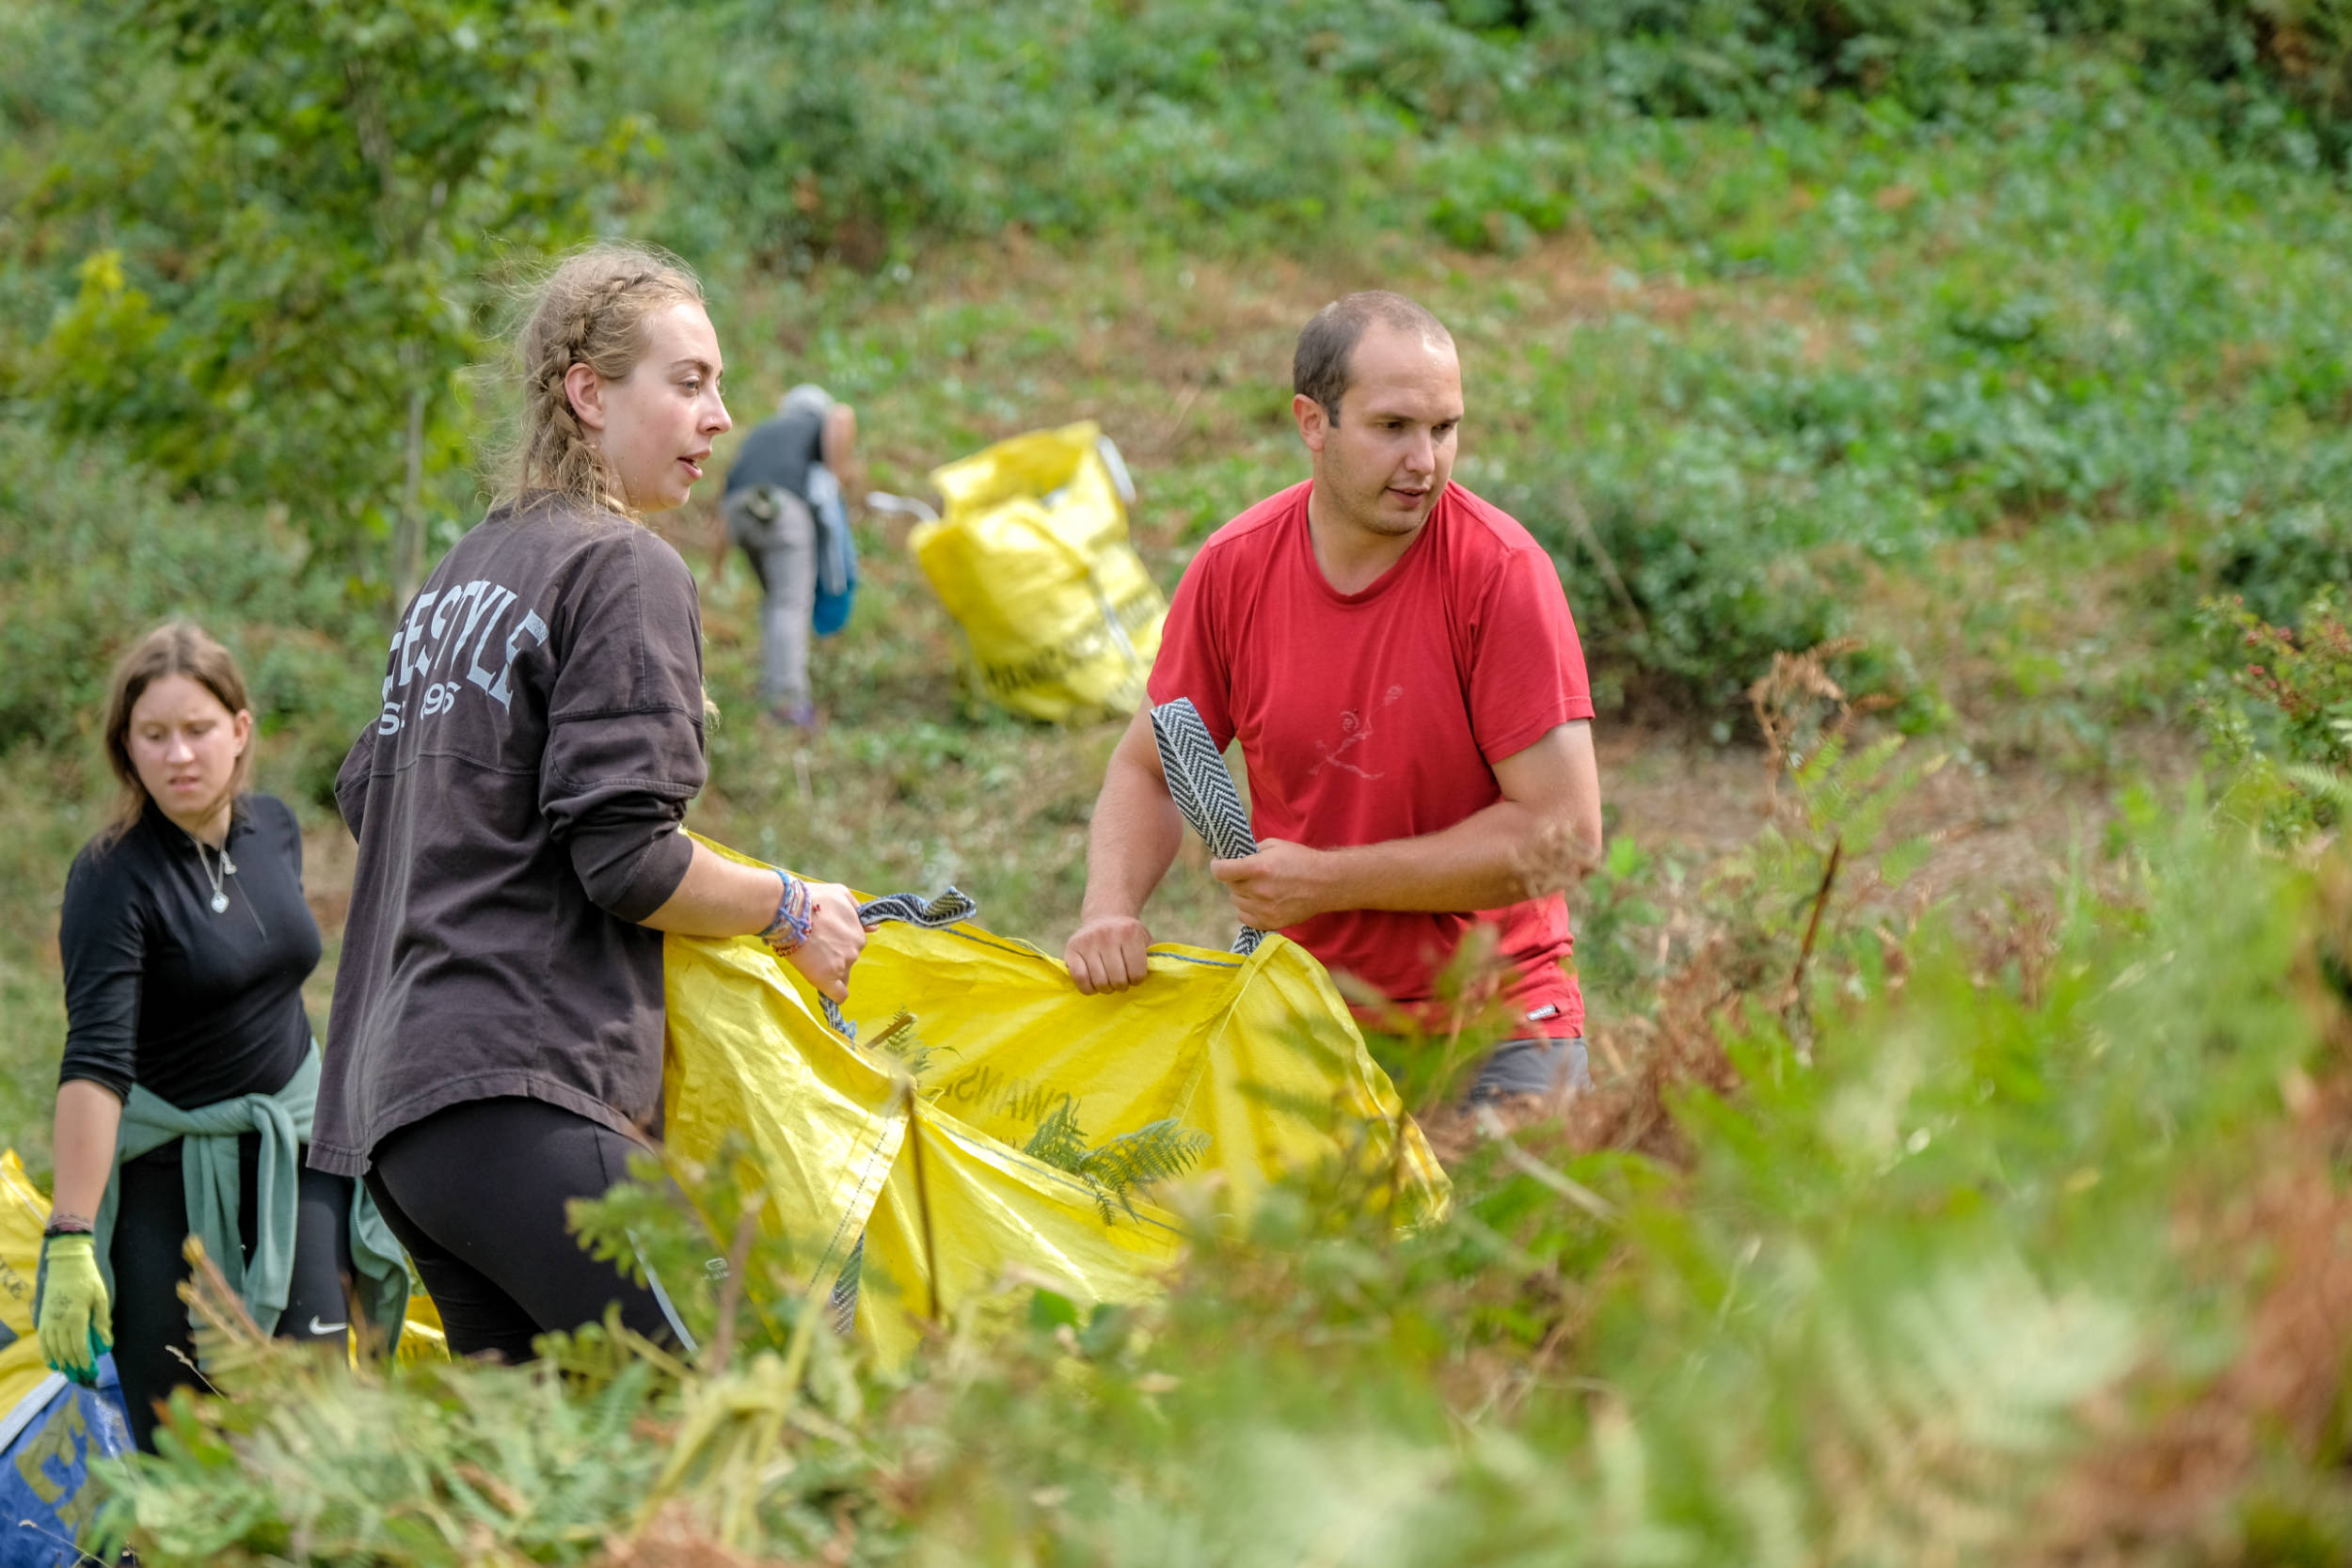 National-trust-community-project